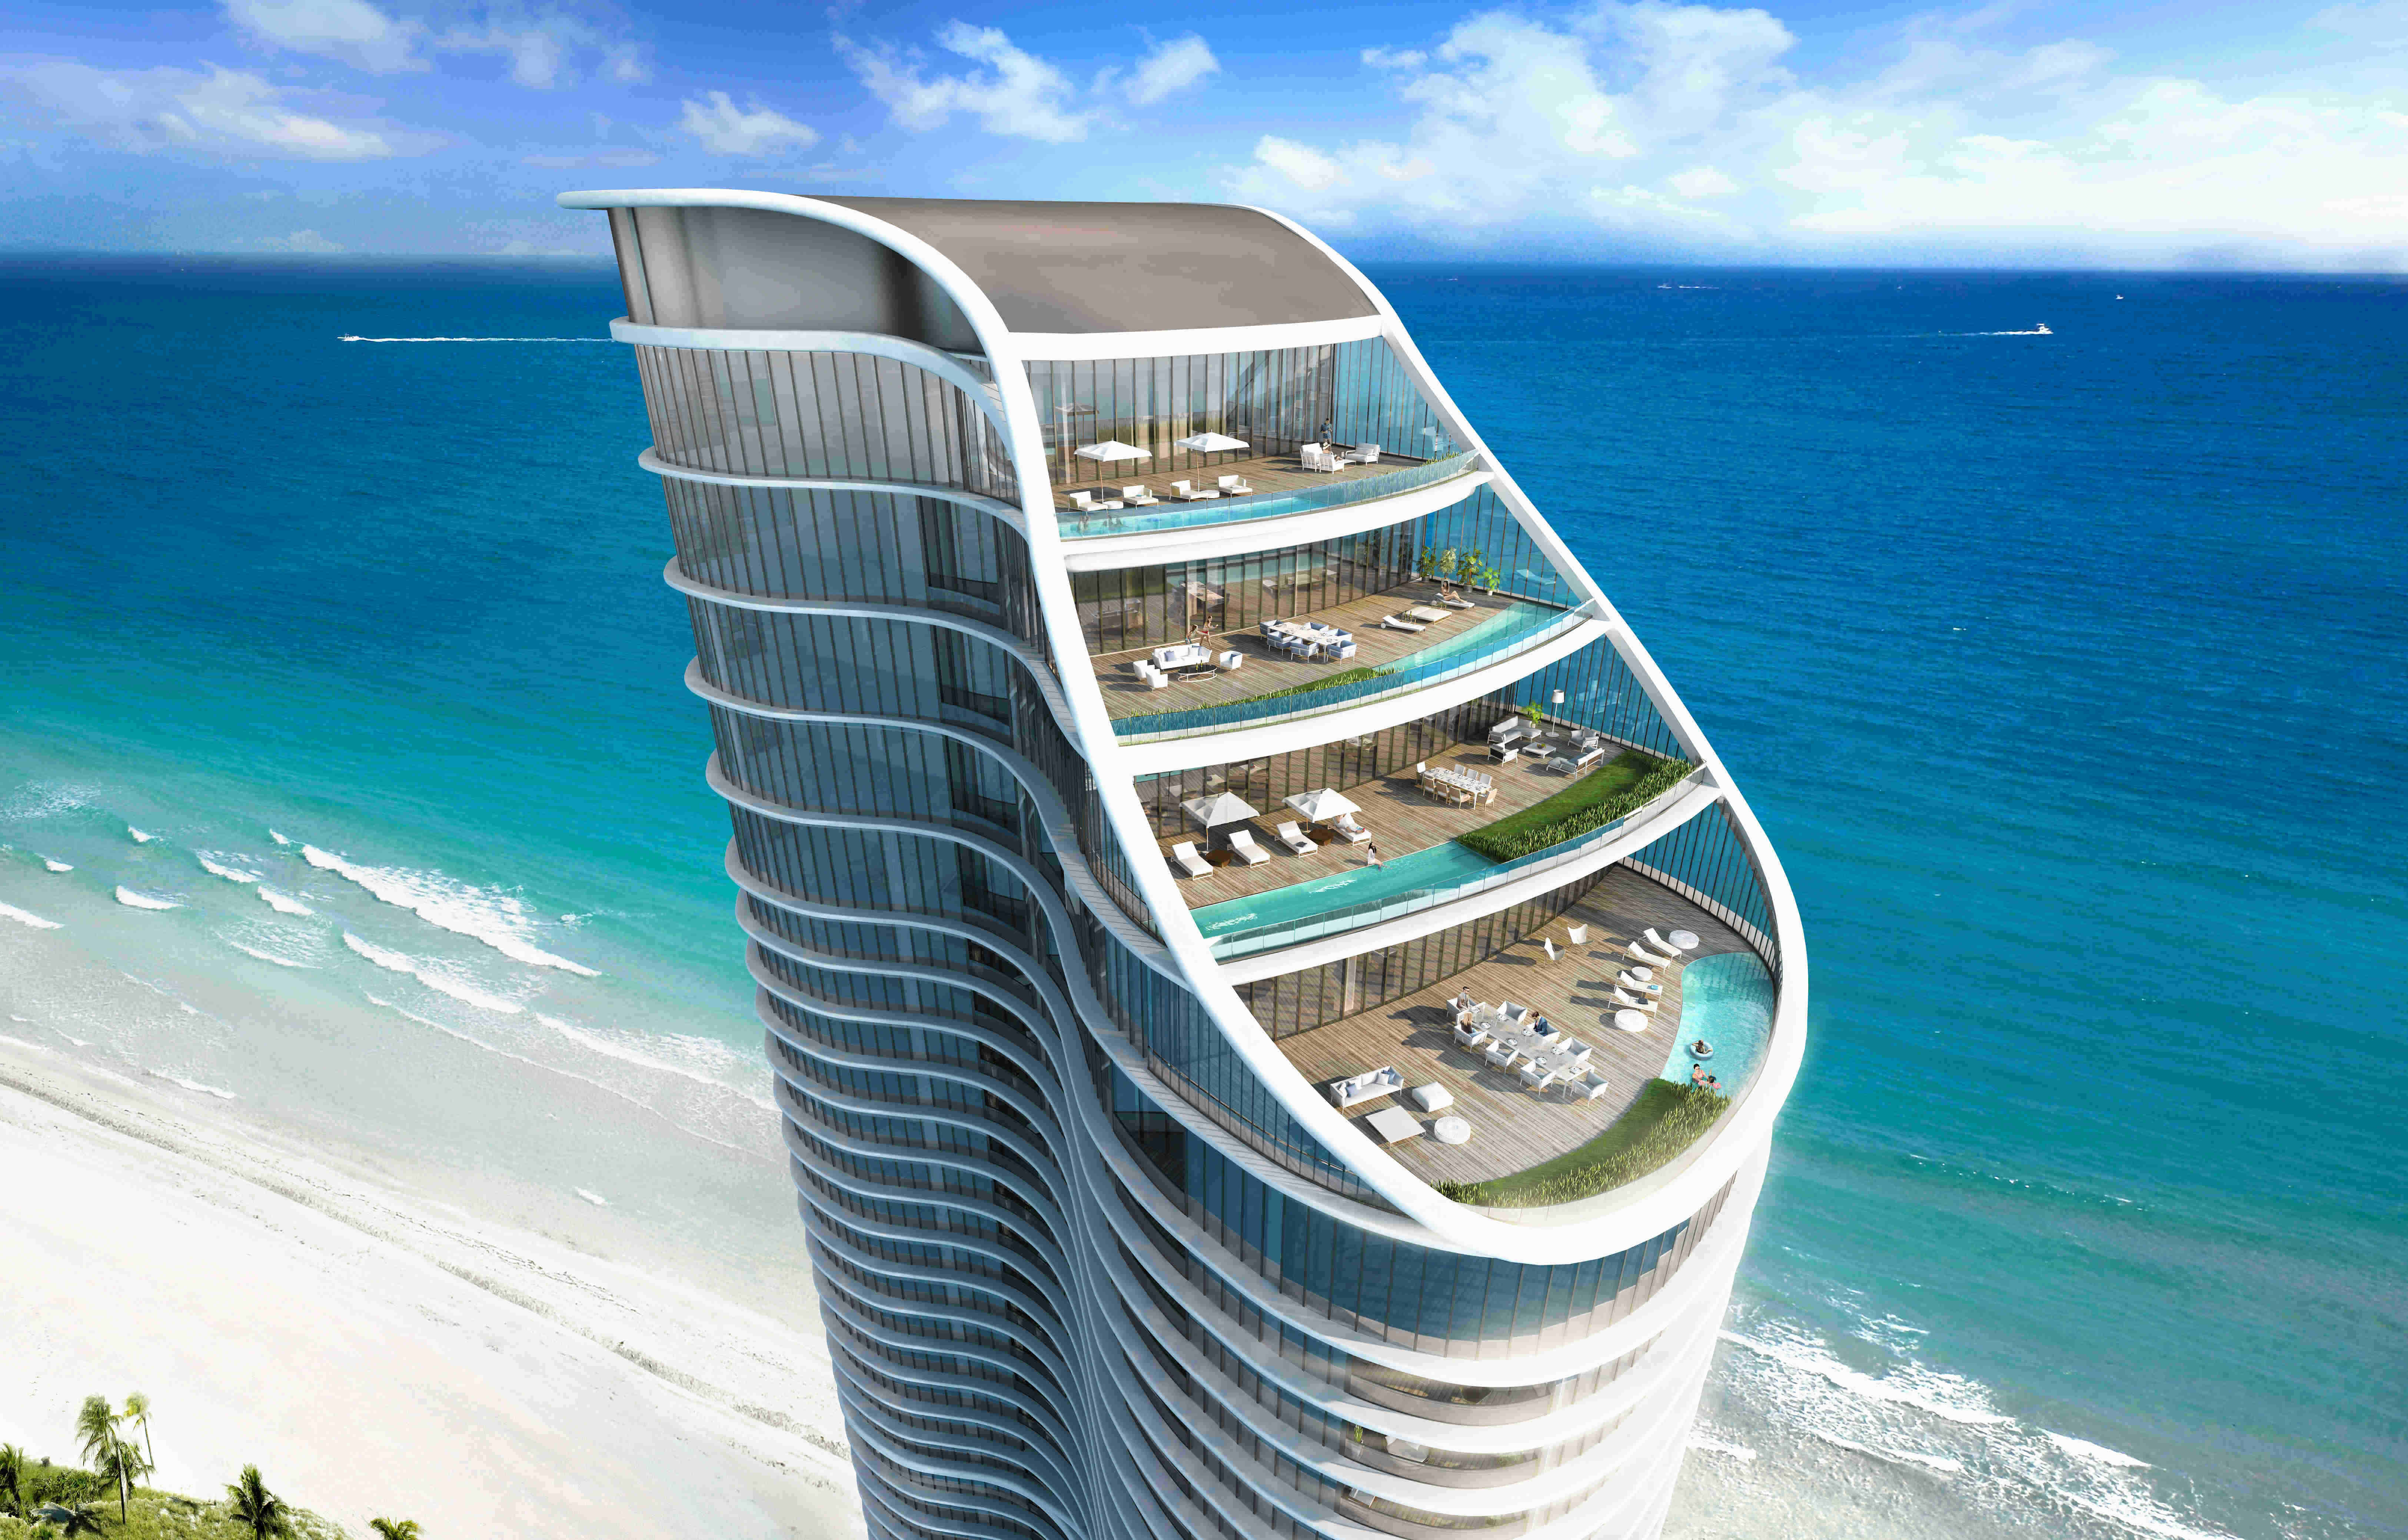 Sunny Isles Apartments For Sale. Sunny Isles Beach Condos For